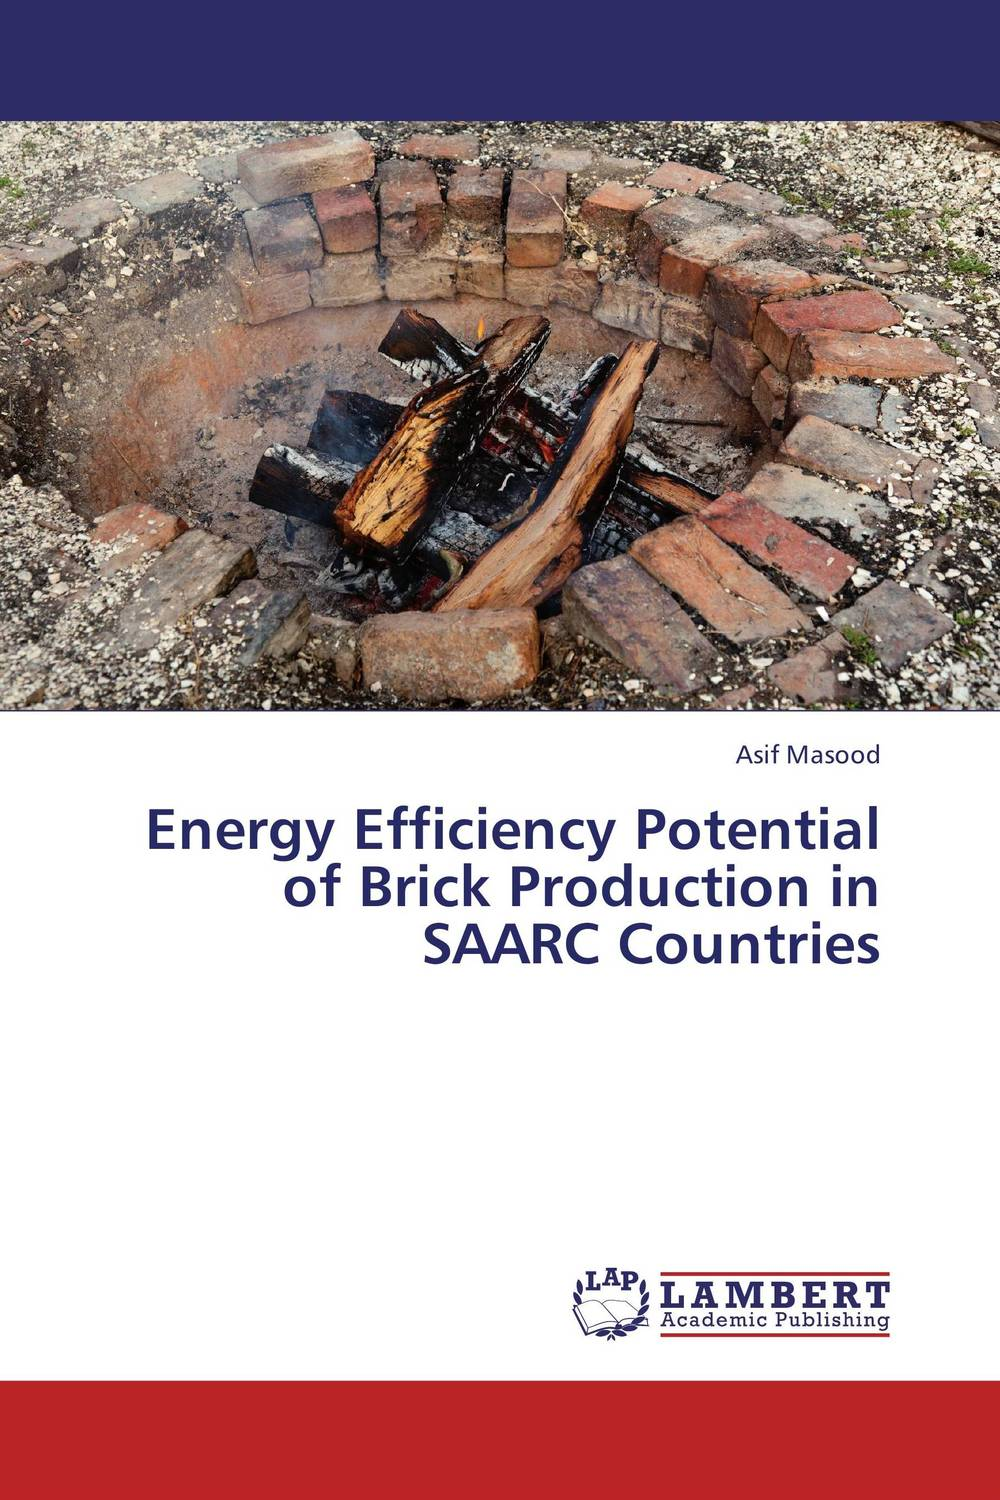 Energy Efficiency Potential of Brick Production in SAARC Countries rakesh kumar production potential of summer mungbean cultivars in india